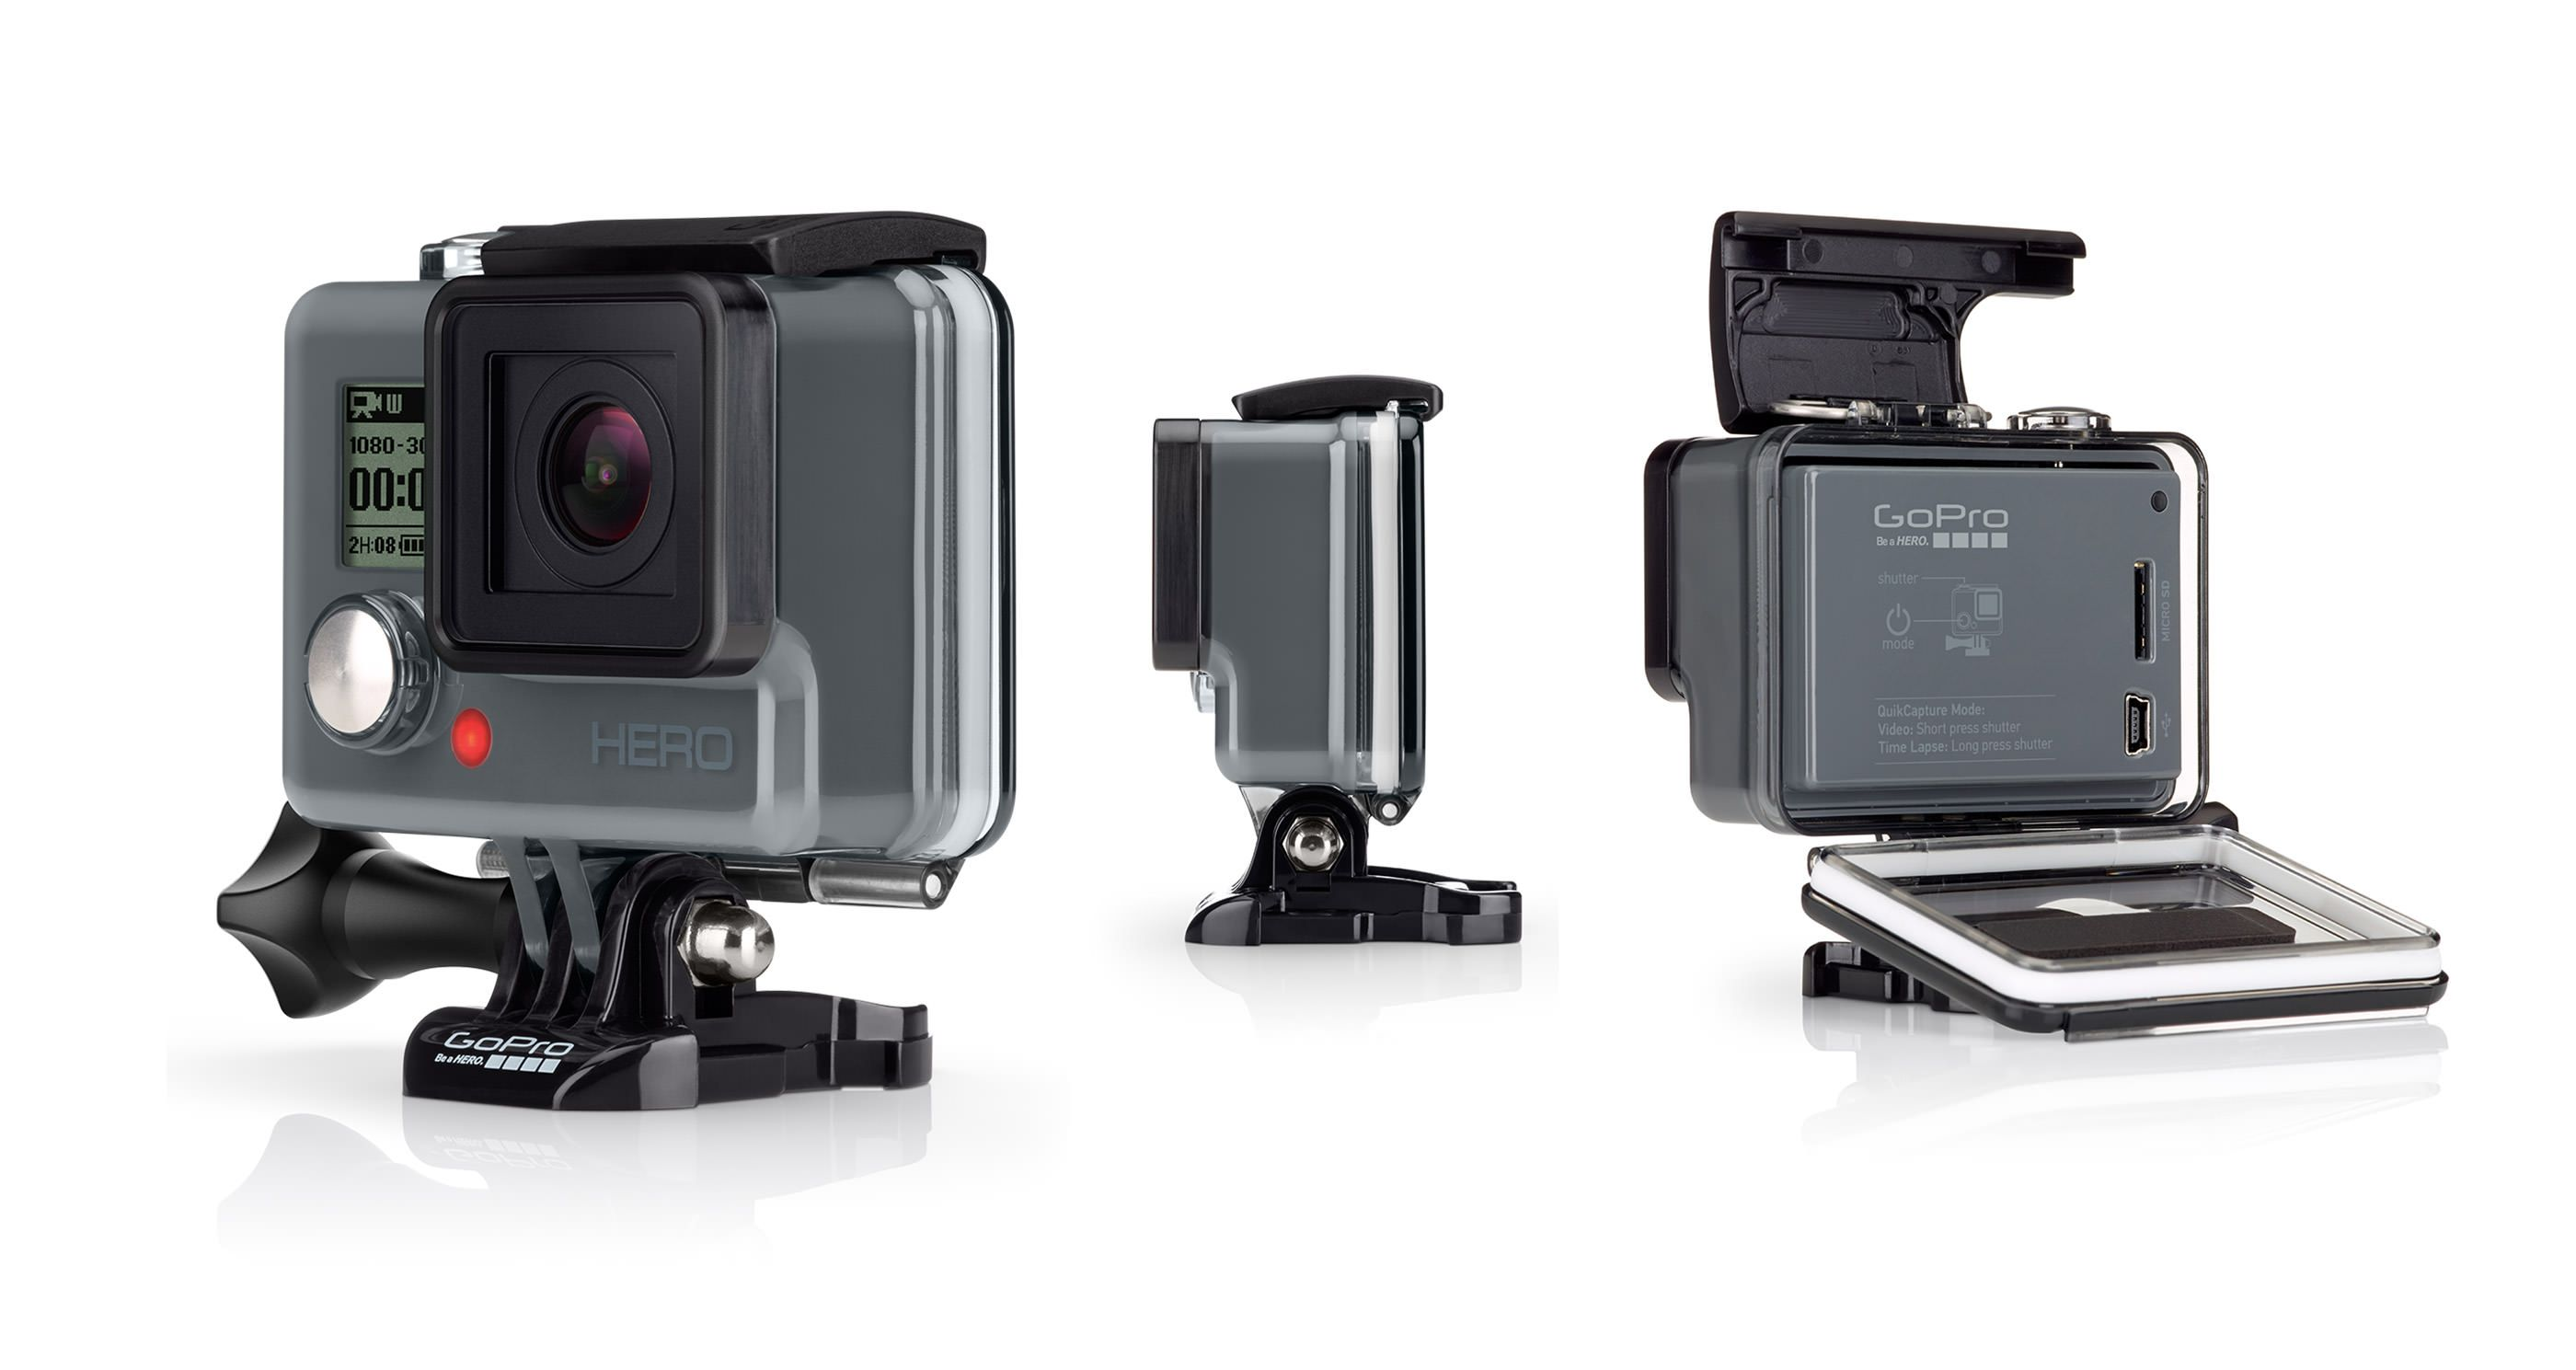 Save 100 On The Gopro Hero 8 Black In This Brilliant Black Friday Bundle In 2020 Gopro Gopro Hero Black Friday